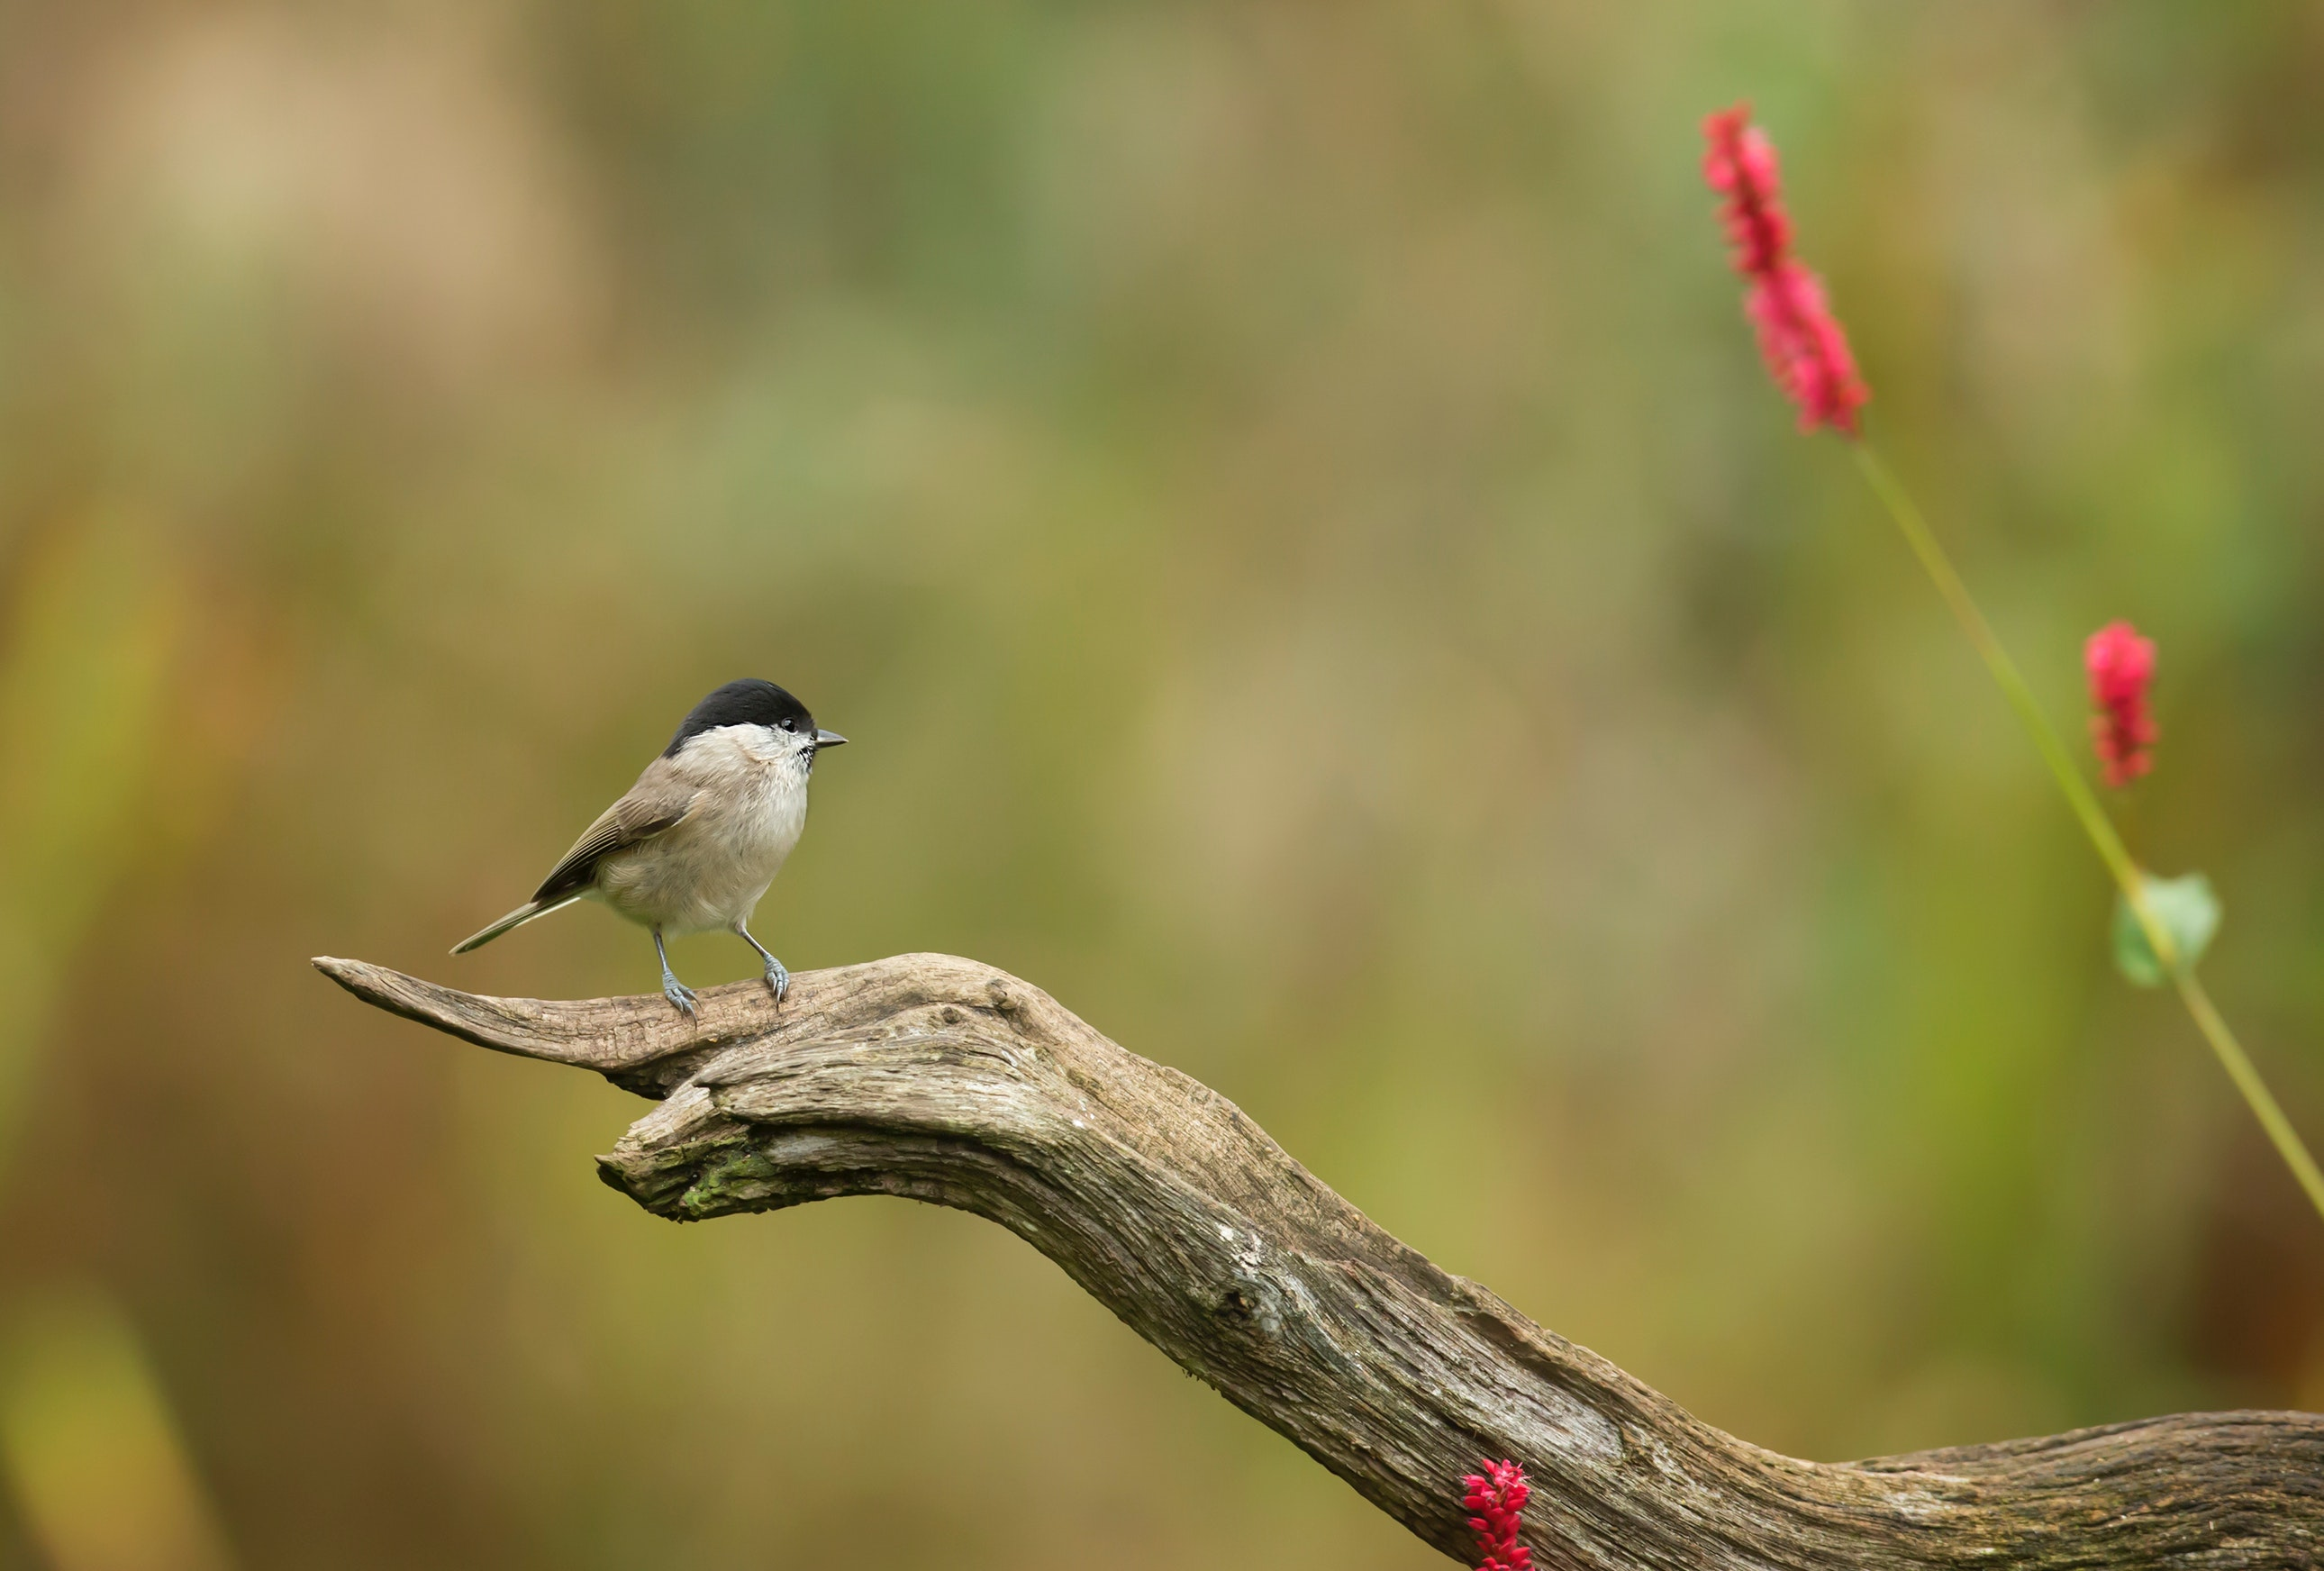 Shallow Focus Photography of Gray Bird on Brown Branch, Outdoors, Wood, Wings, Wildlife, HQ Photo